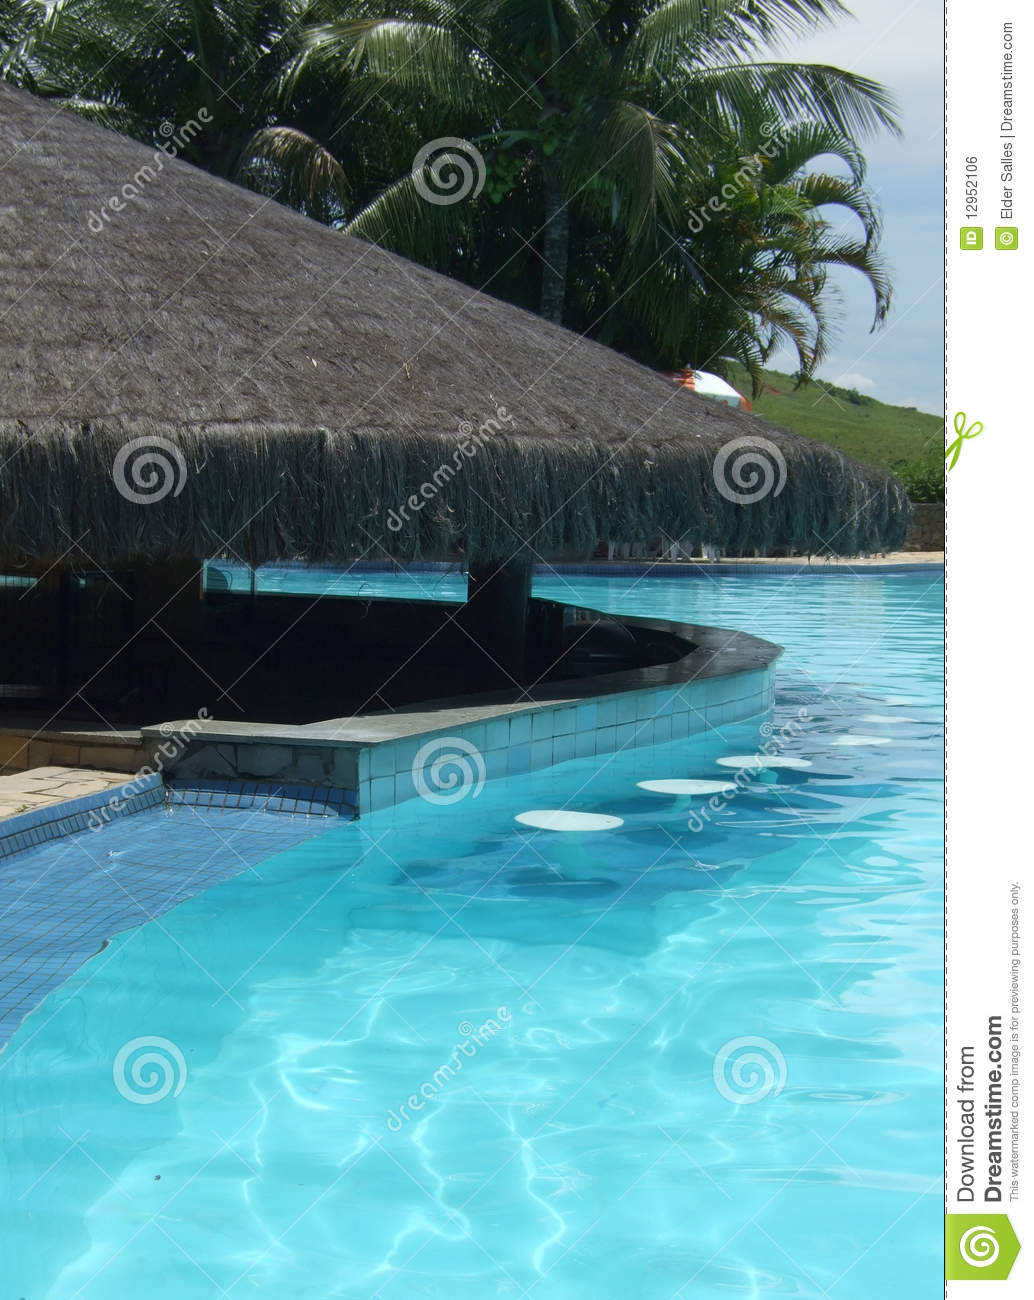 Free Swimming Pool: Swimming Pool In A Tropical Country Stock Photo